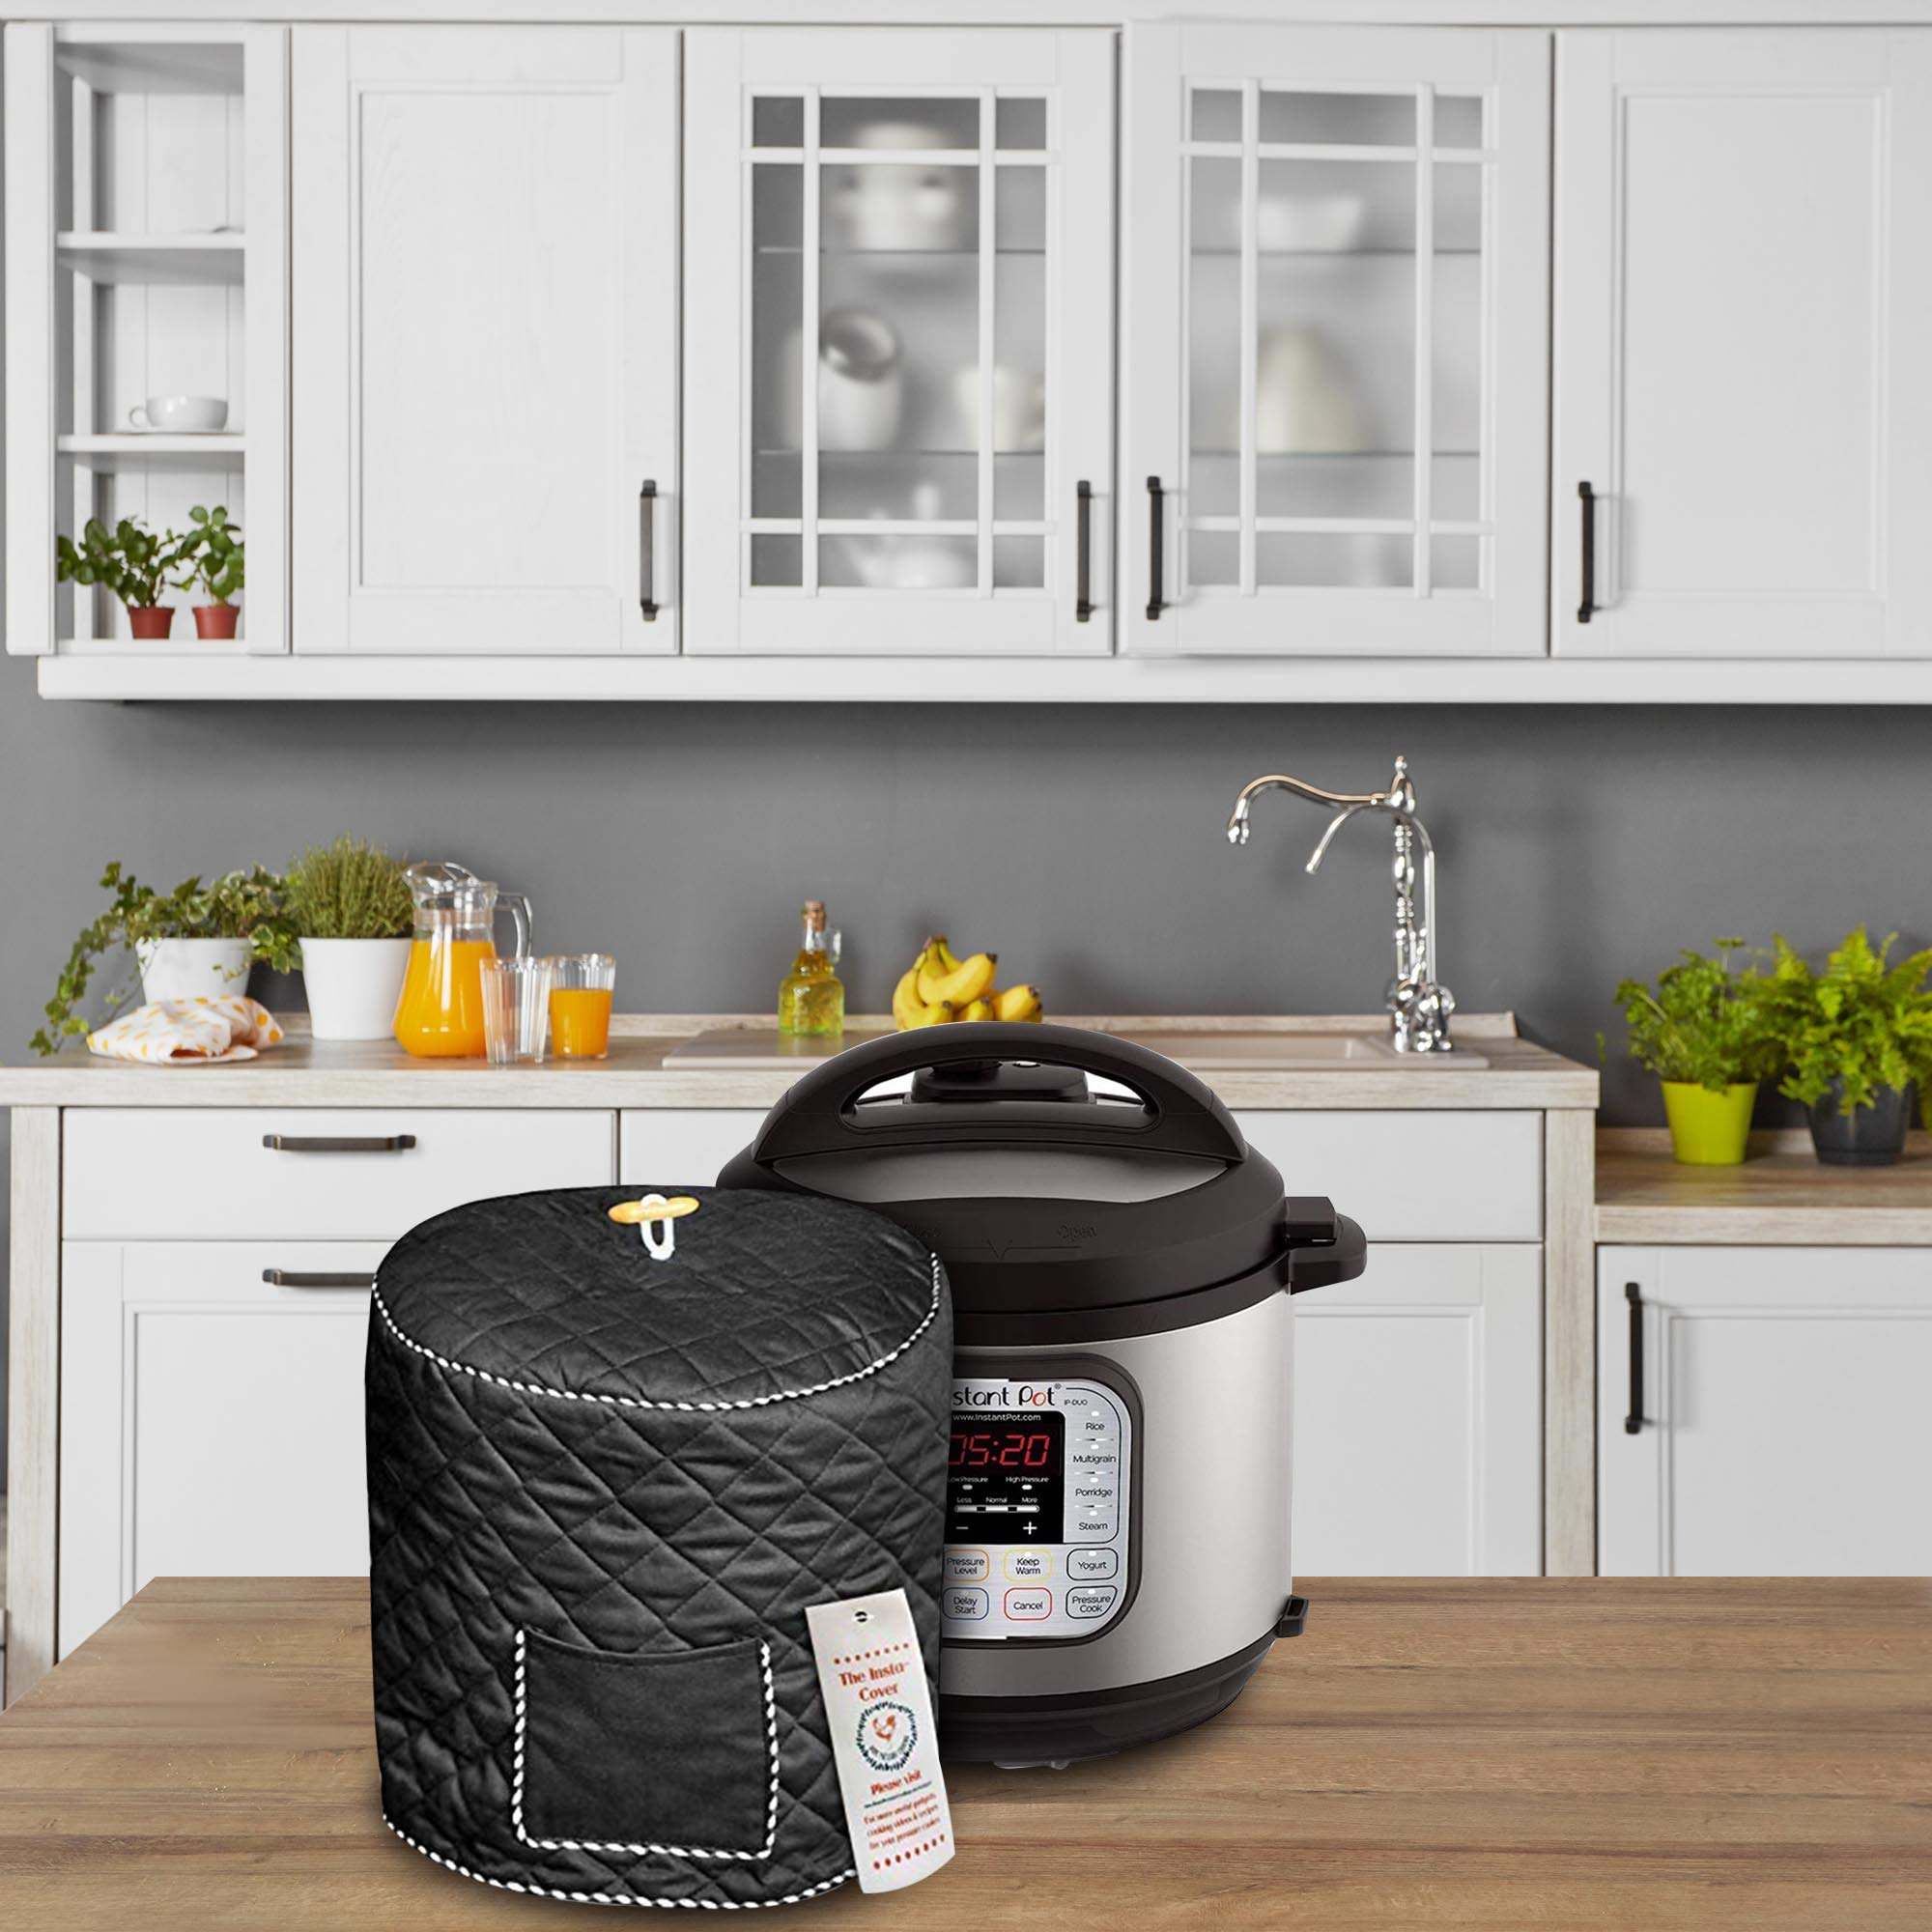 Custom Made Quilted 8 QT Pressure Cooker Cover For Use With Instant Pot Models And Compatible by Debbiedoo's